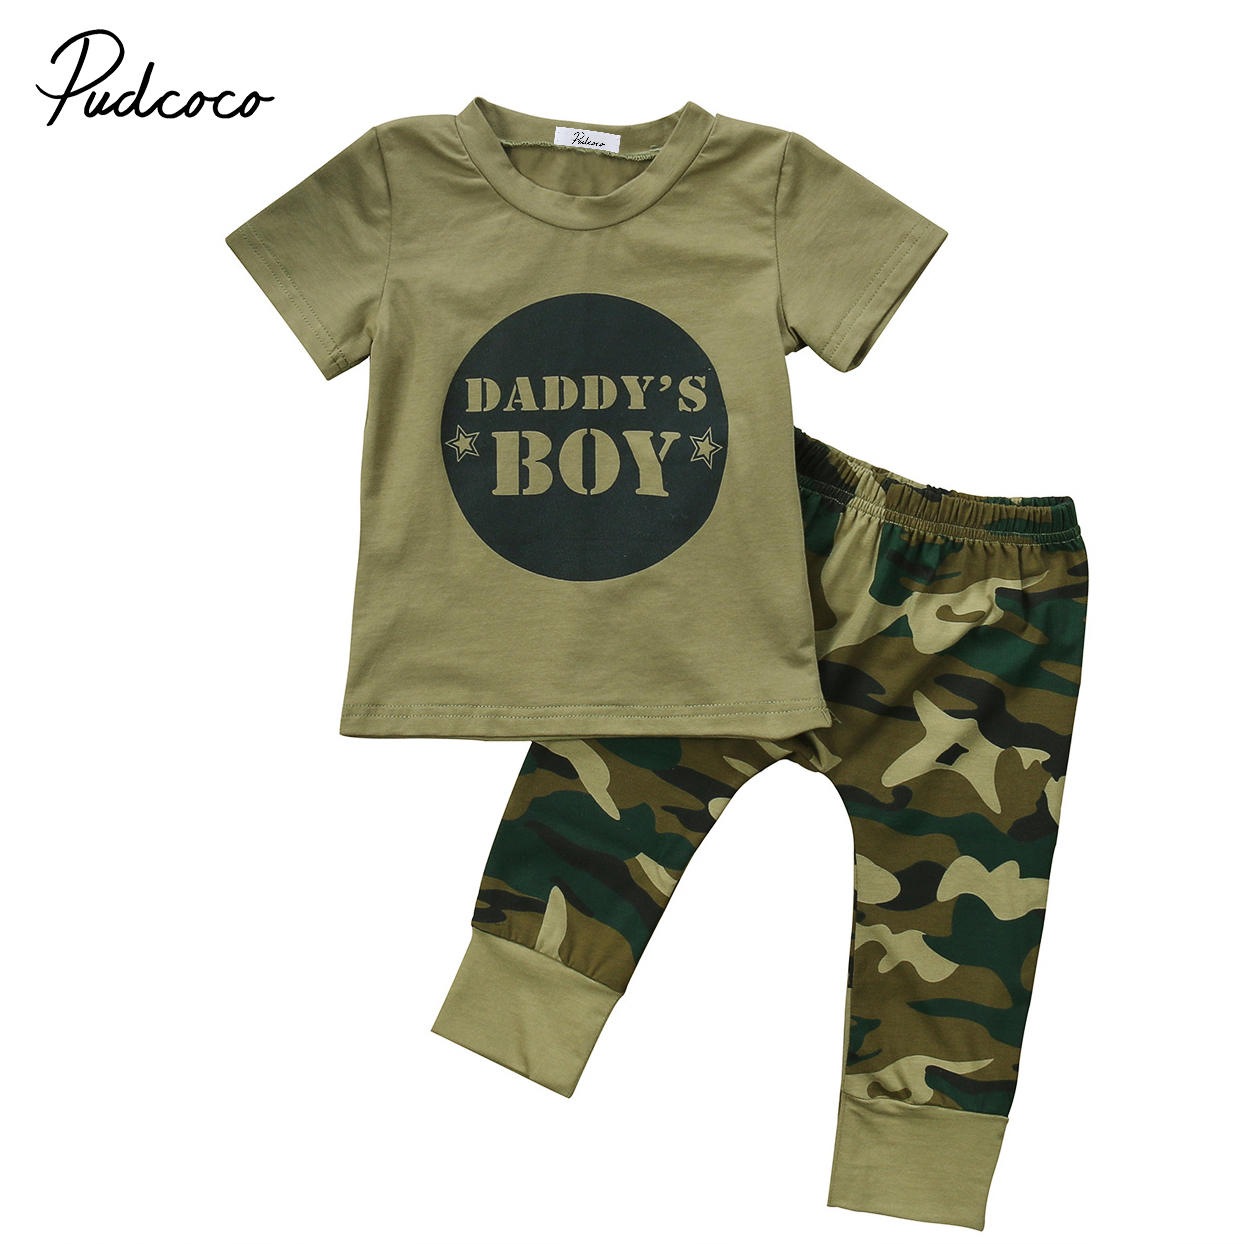 2pcs baby clothes Newborn Toddler Army green Baby Boy Girl letter T-shirt Tops Camouflage Pants Outfits Set Clothes 0-24M newborn baby kids boys tops cool letter printing i do what i want sleeveless t shirt vest short pants 2pcs outfits set clothes